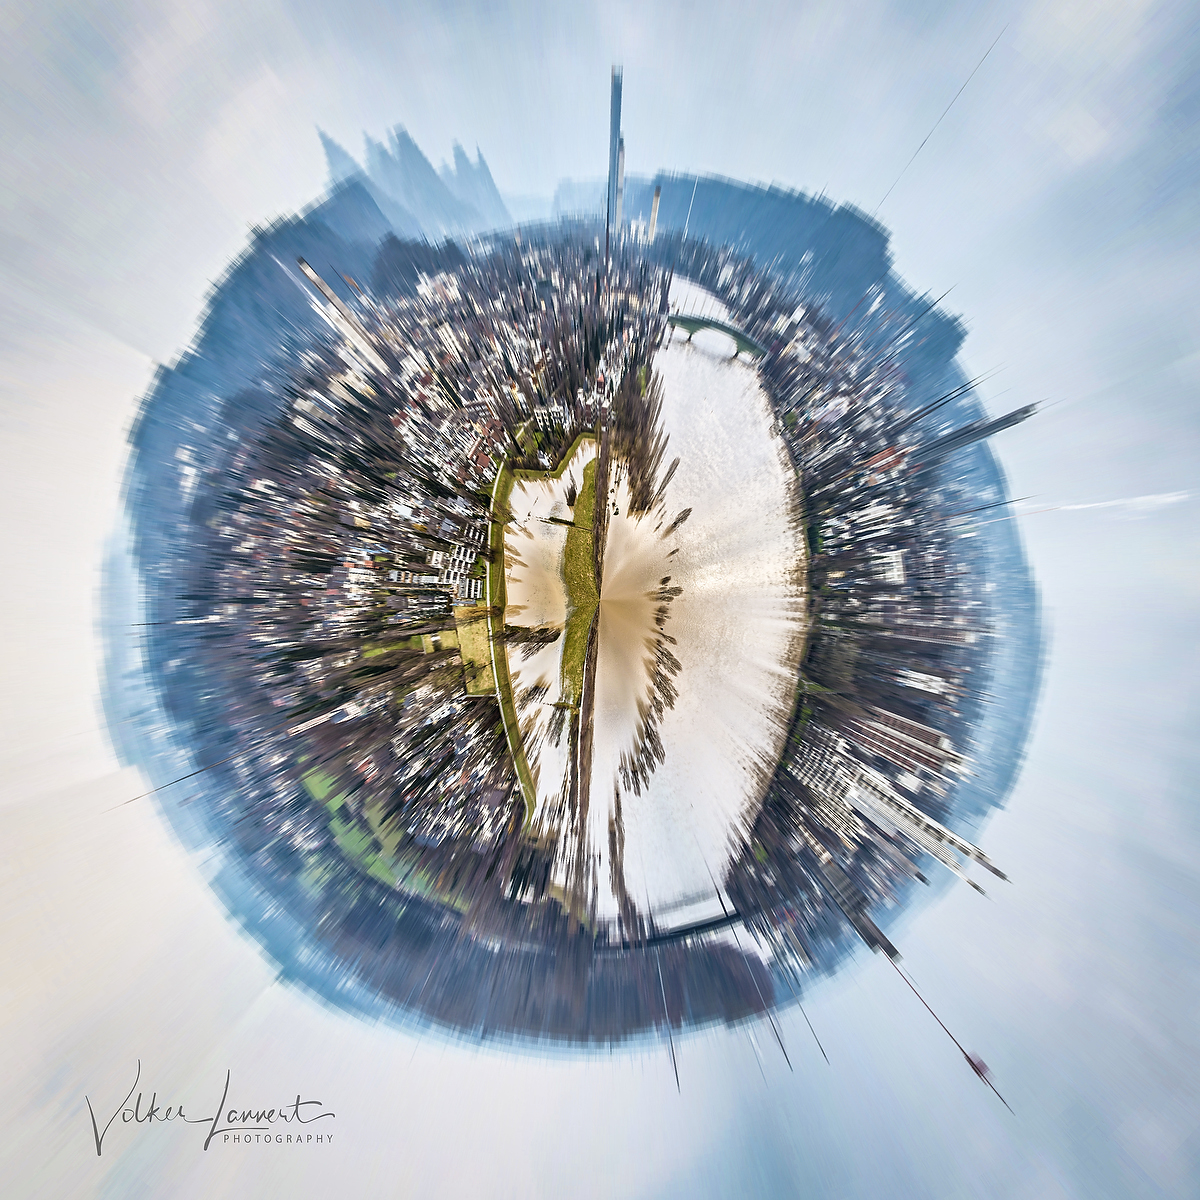 Big City - Tiny Planet